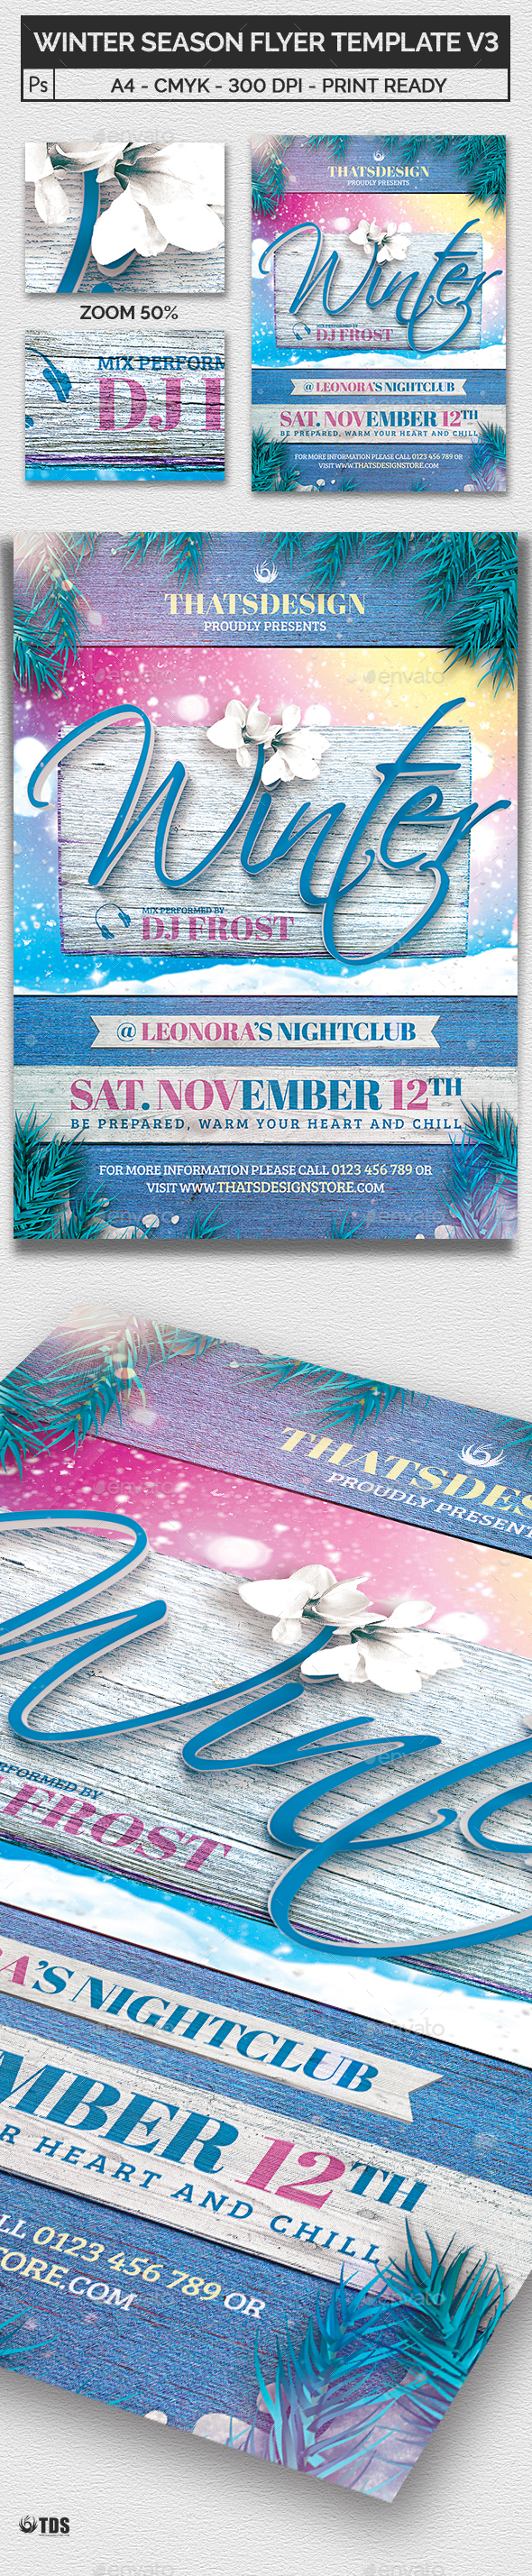 Winter Season Flyer Template V3 - Clubs & Parties Events